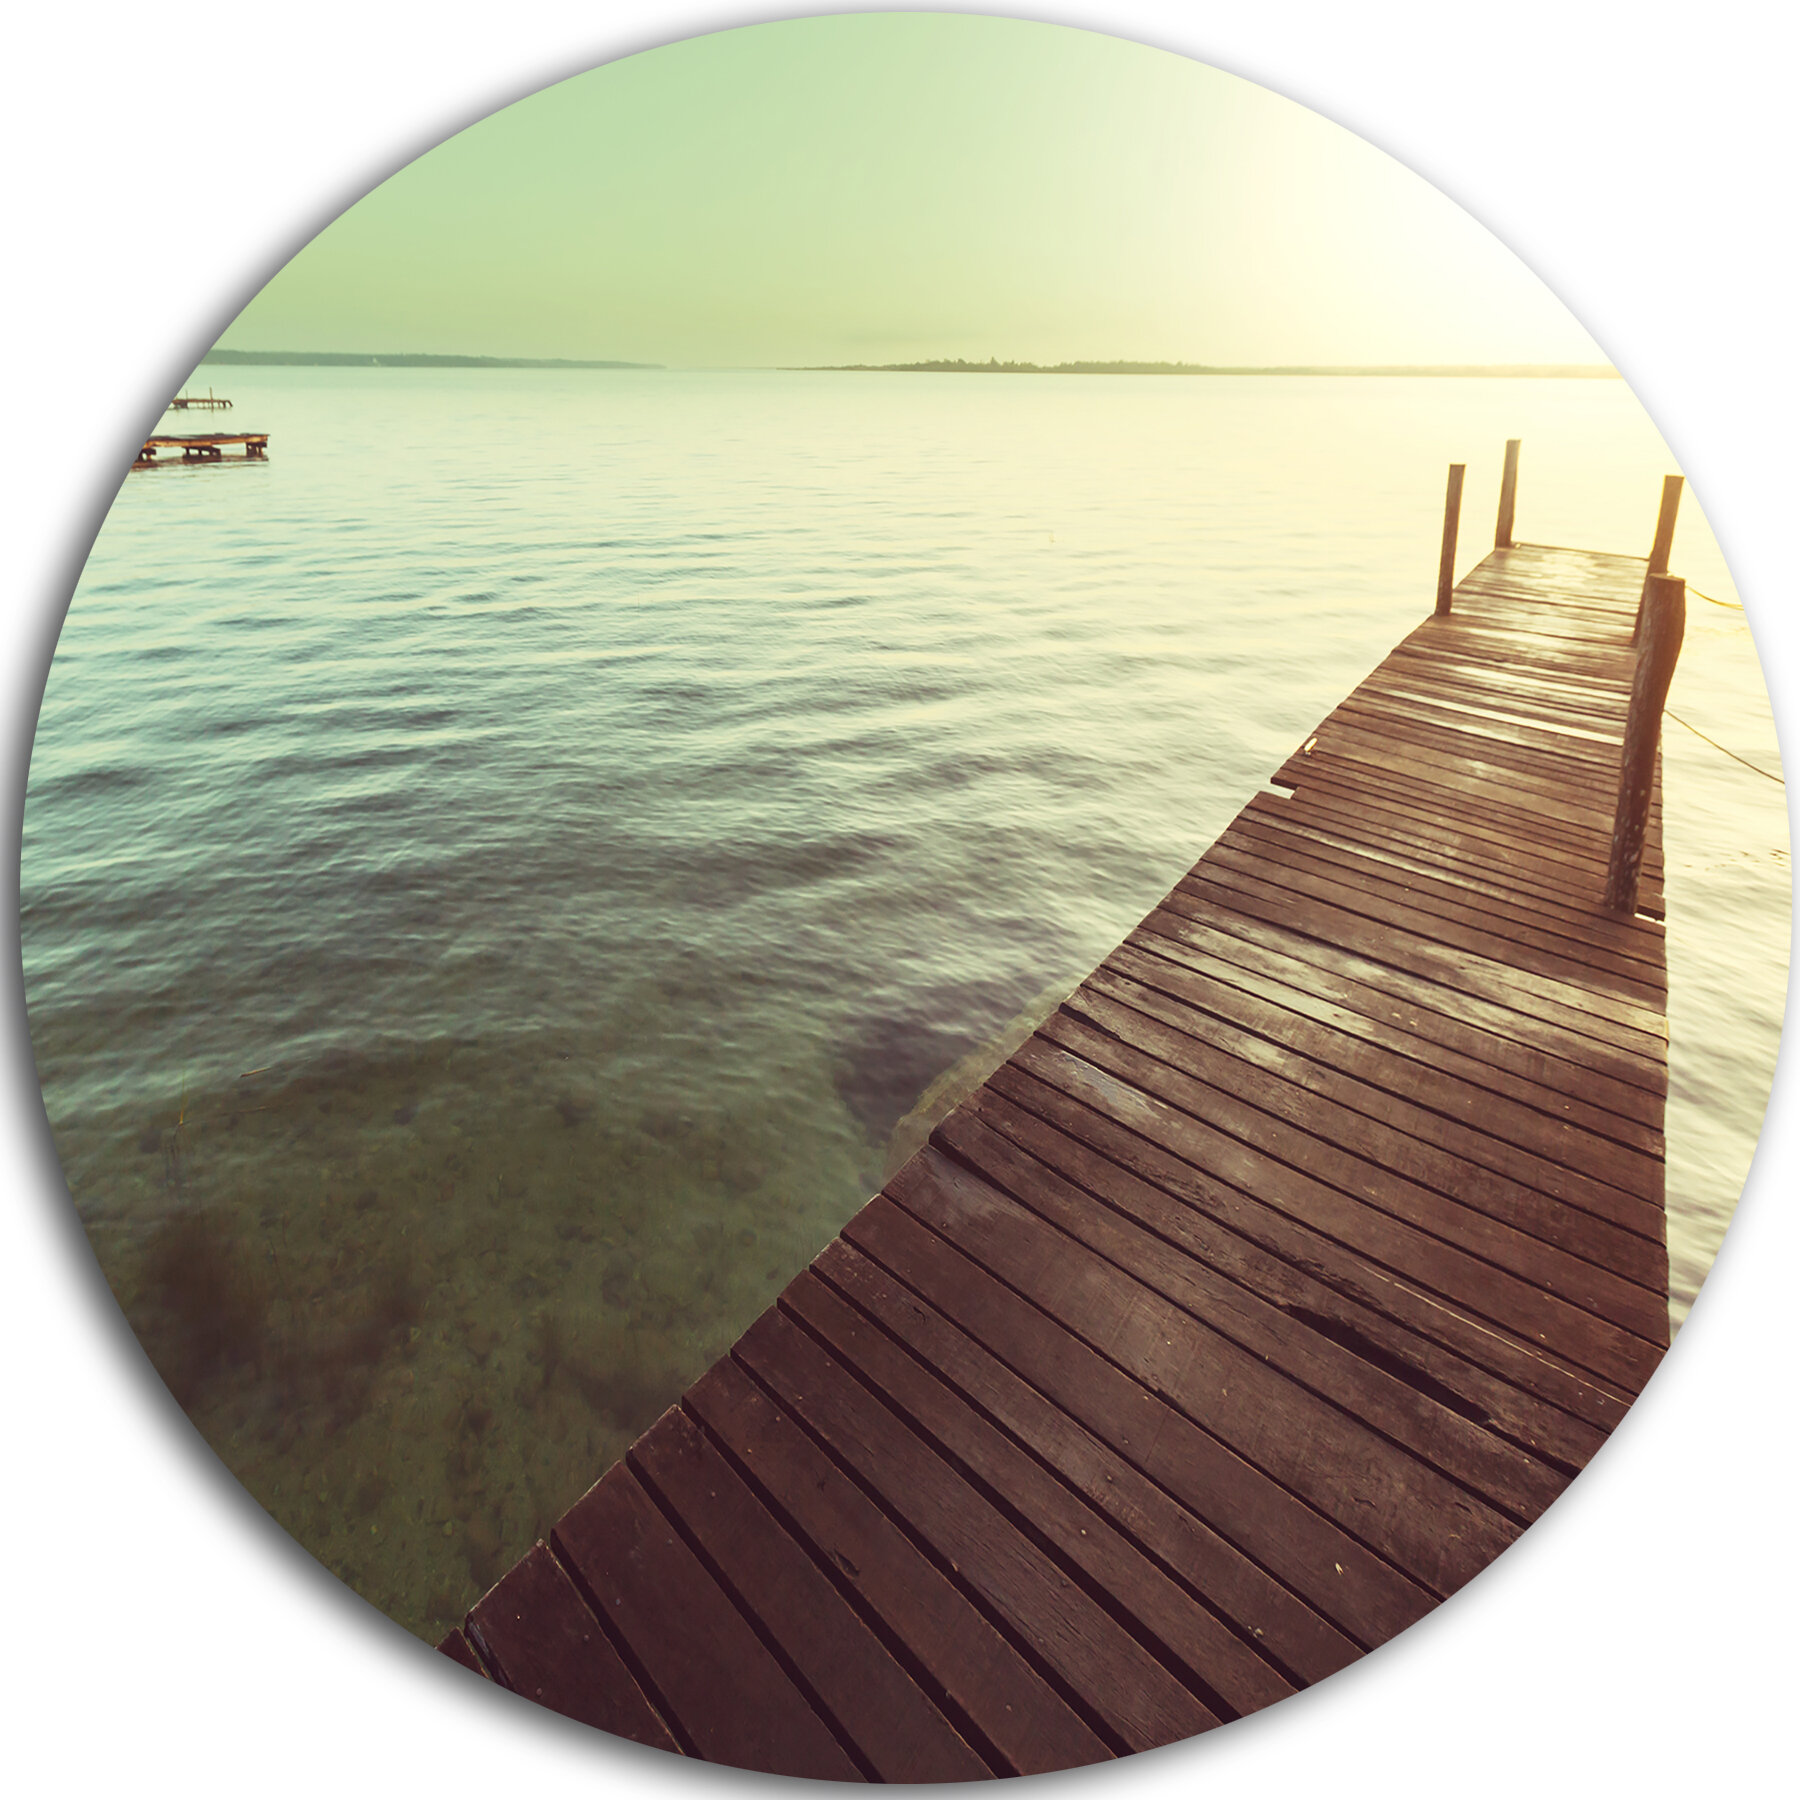 how to put an accent over a letter designart wooden boardwalk clear waters 10803 | 'Wooden Boardwalk over Clear Waters' Photographic Print on Metal